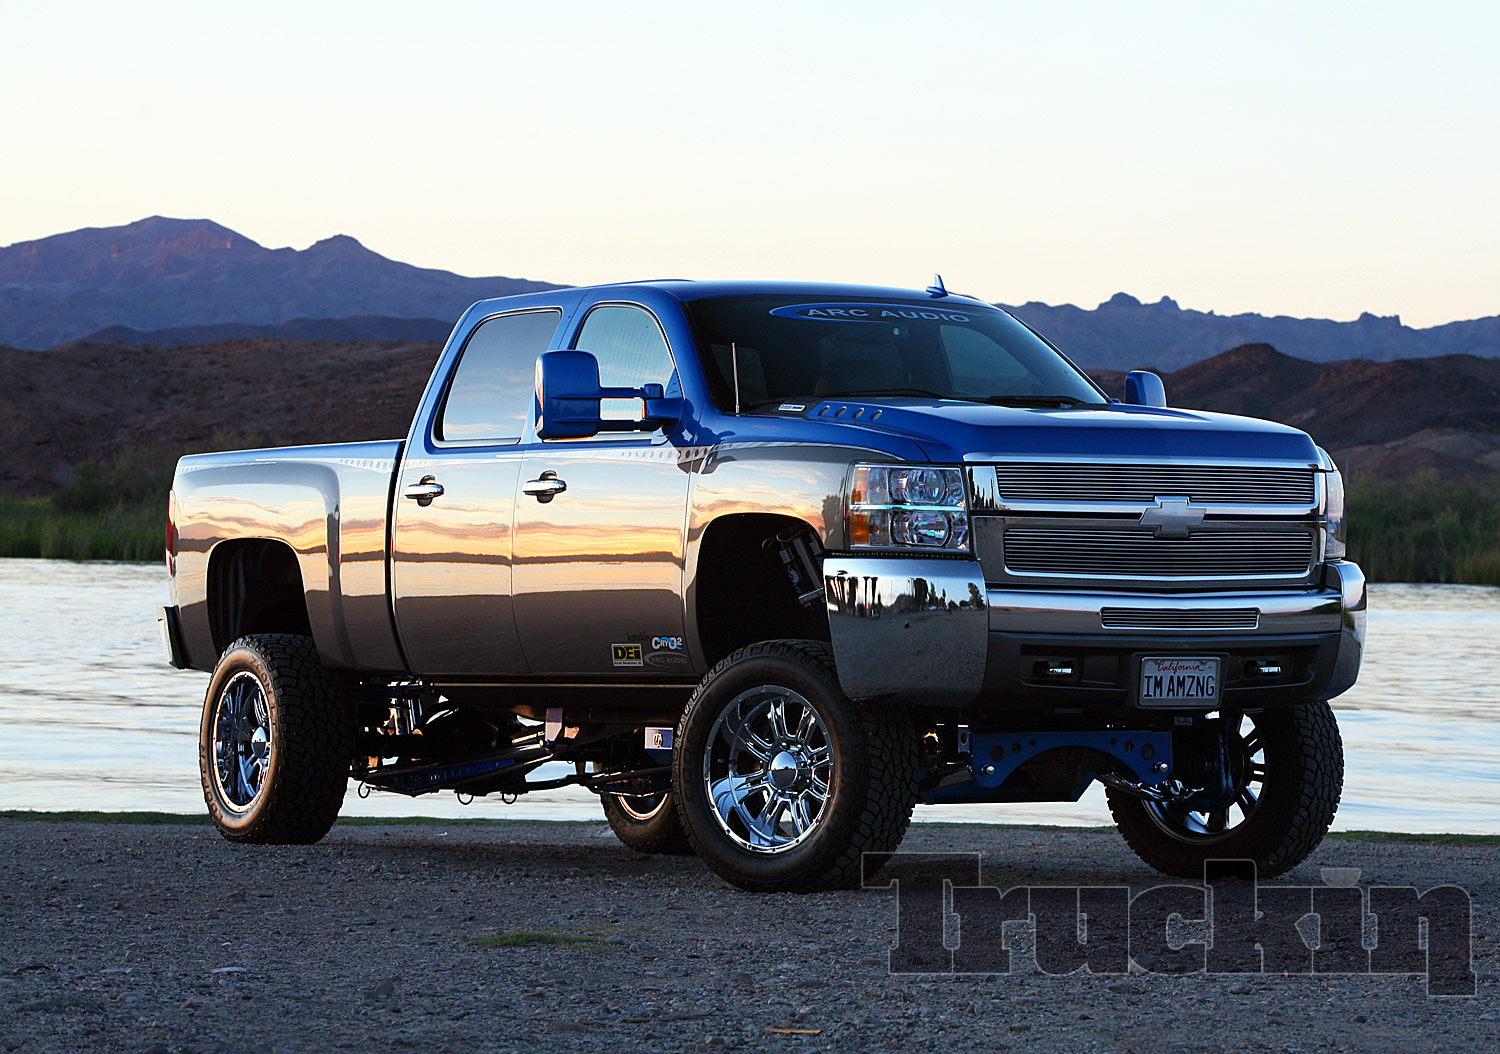 Lifted Chevy Truck Wallpapers - WallpaperSafari